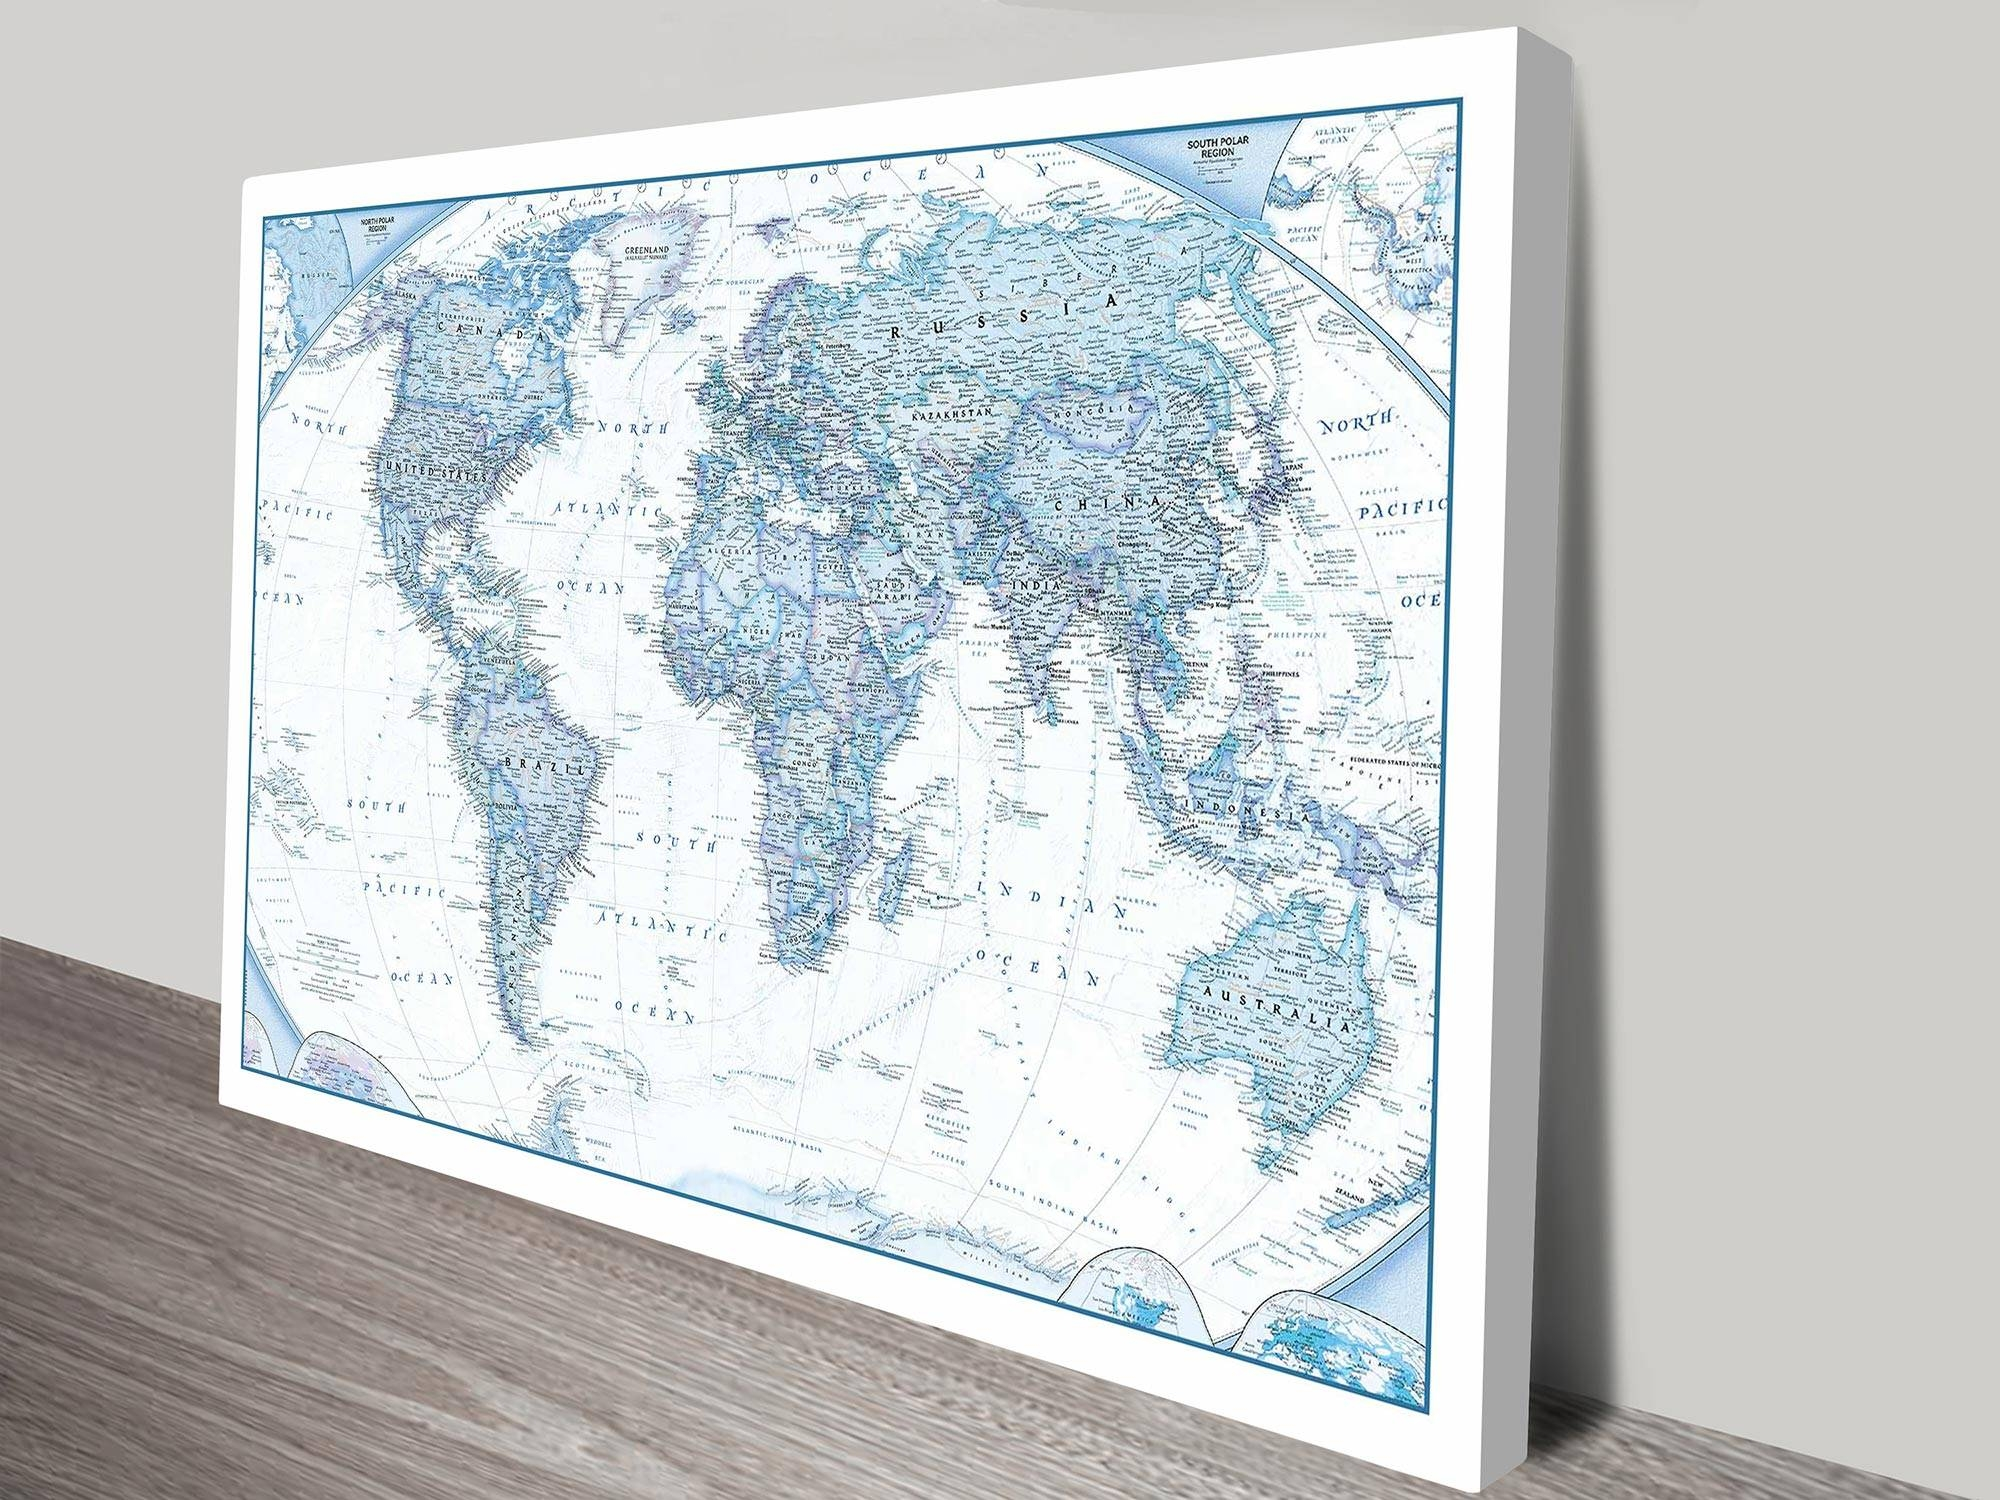 Gallery of World Map Wall Art Print (View 18 of 20 Photos)